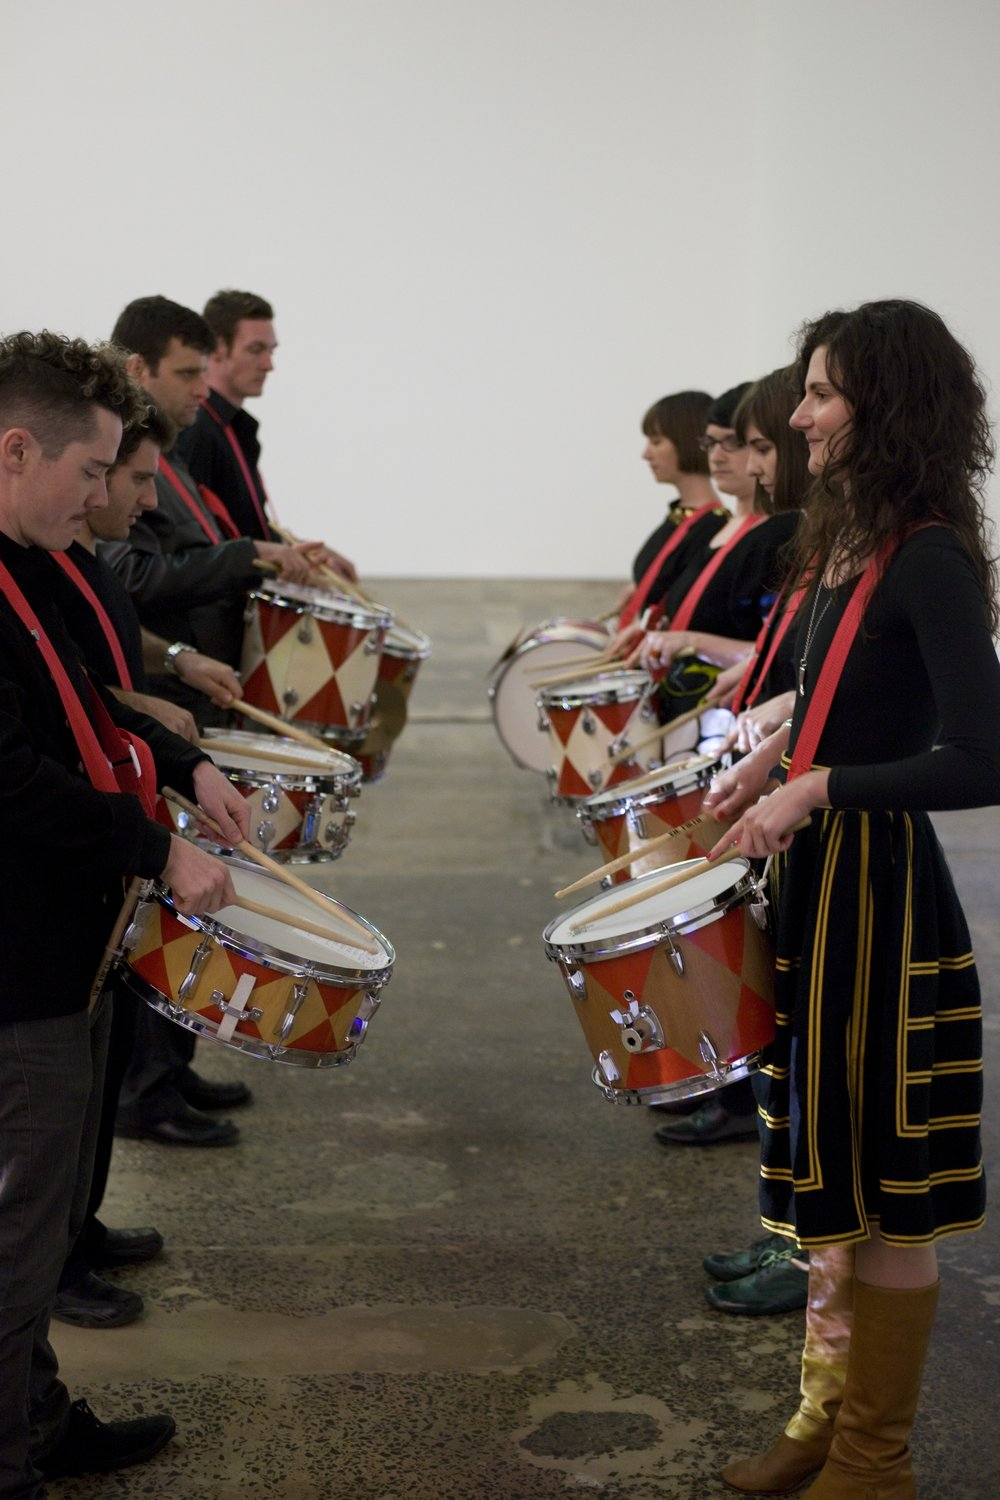 Drumming of Mistakes   Performance with Jared Underwood  Drummers v Painters   Make a Scene exhibition curated by Tania Doropoulos